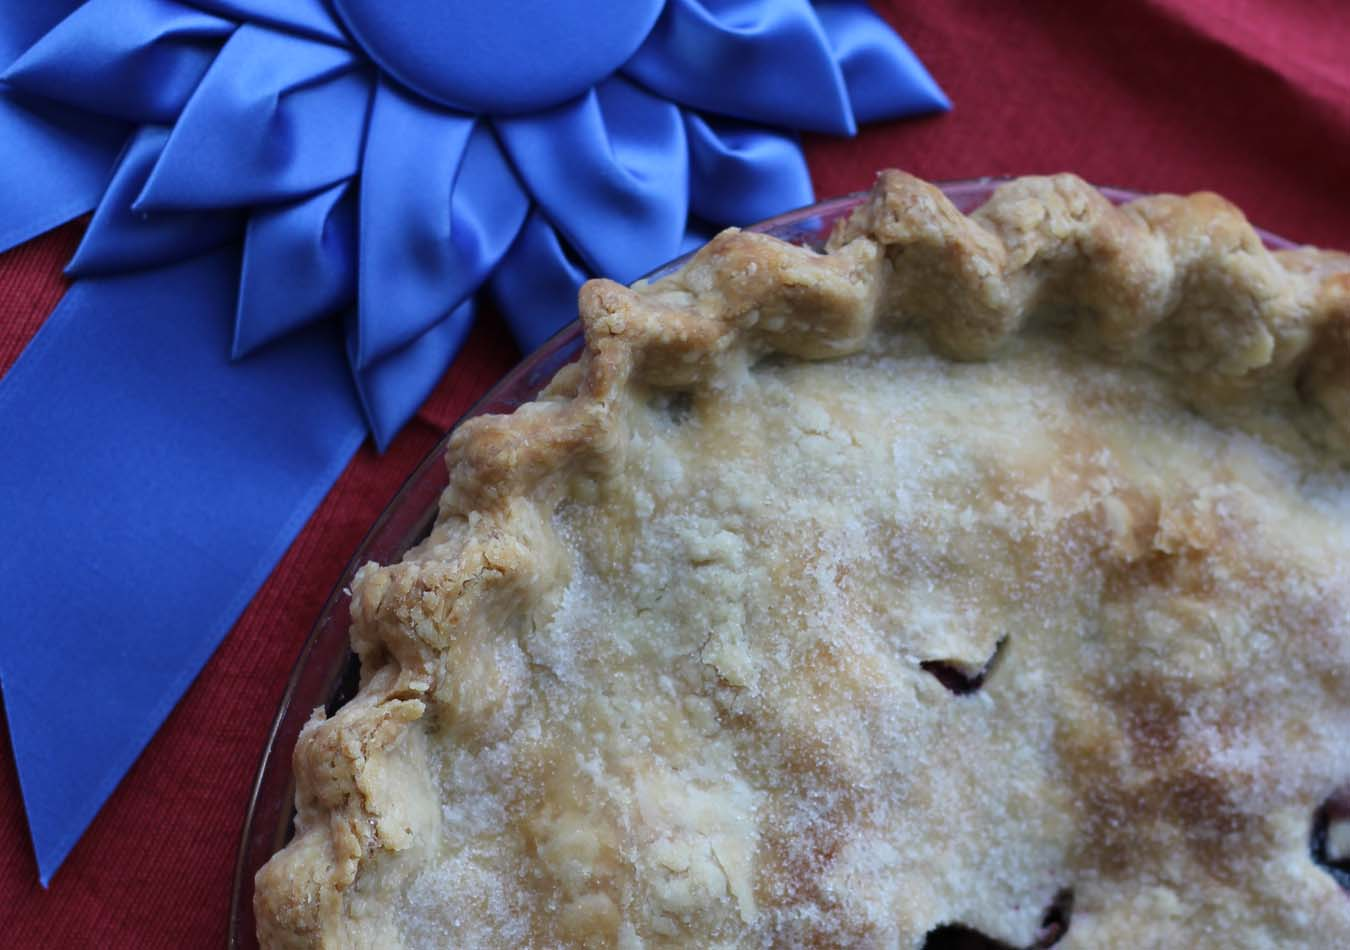 Blueberry Rhubarb Strawberry Pie-Crust from above